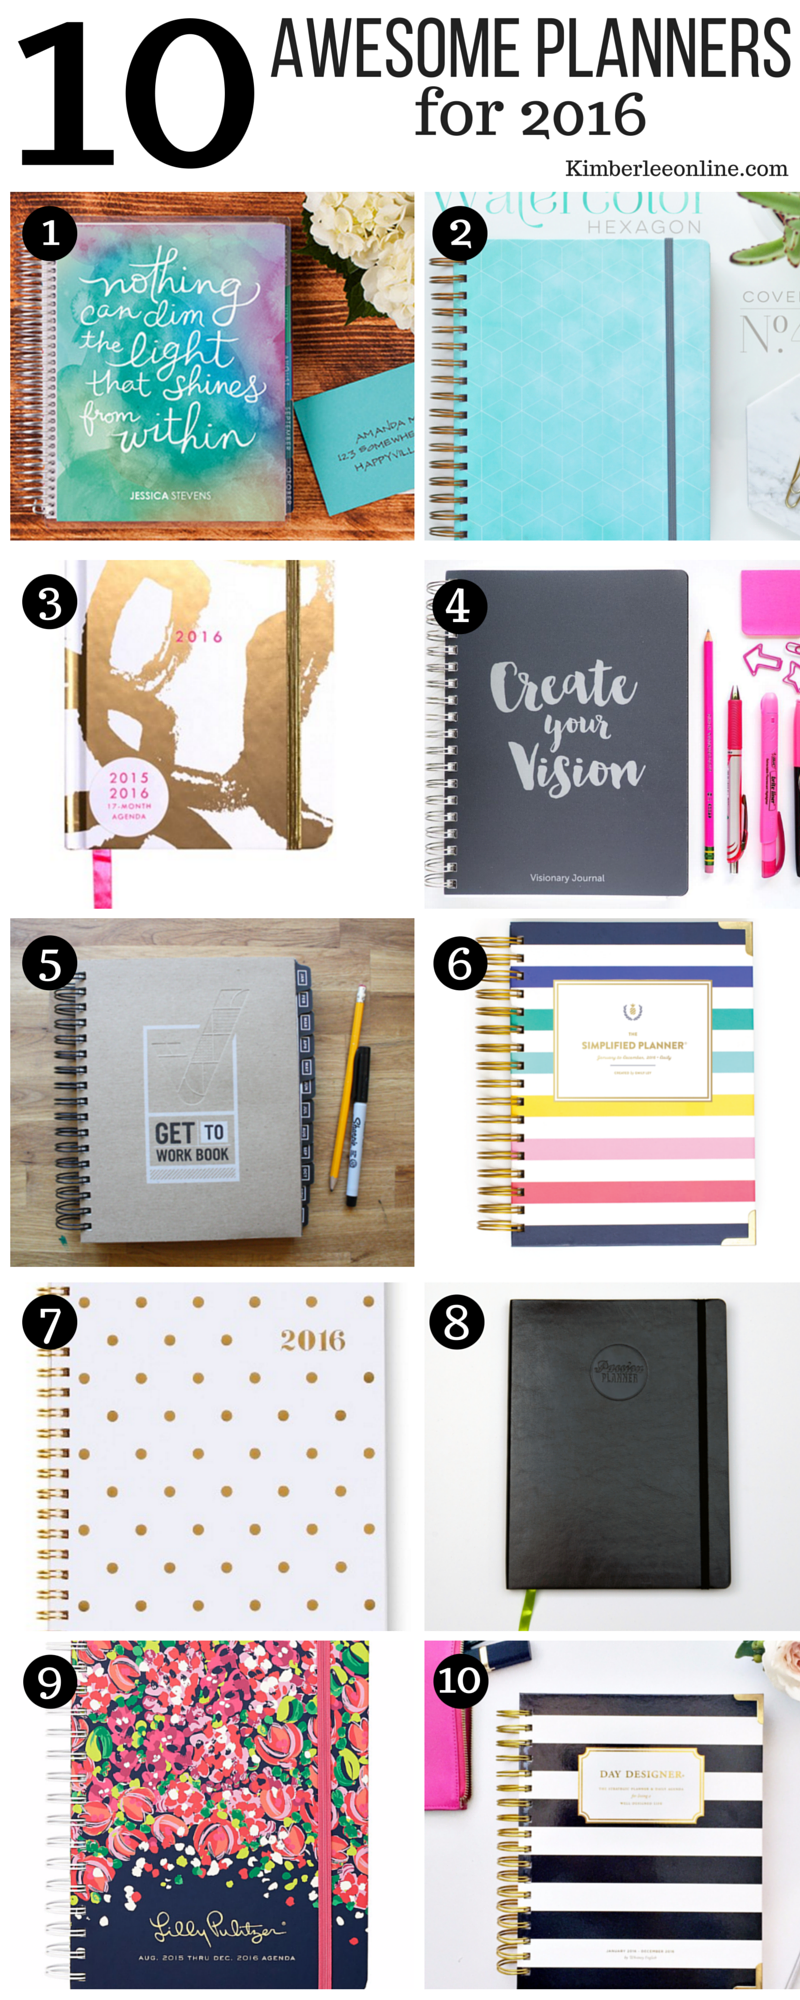 The 10 best planners for women for 2016.